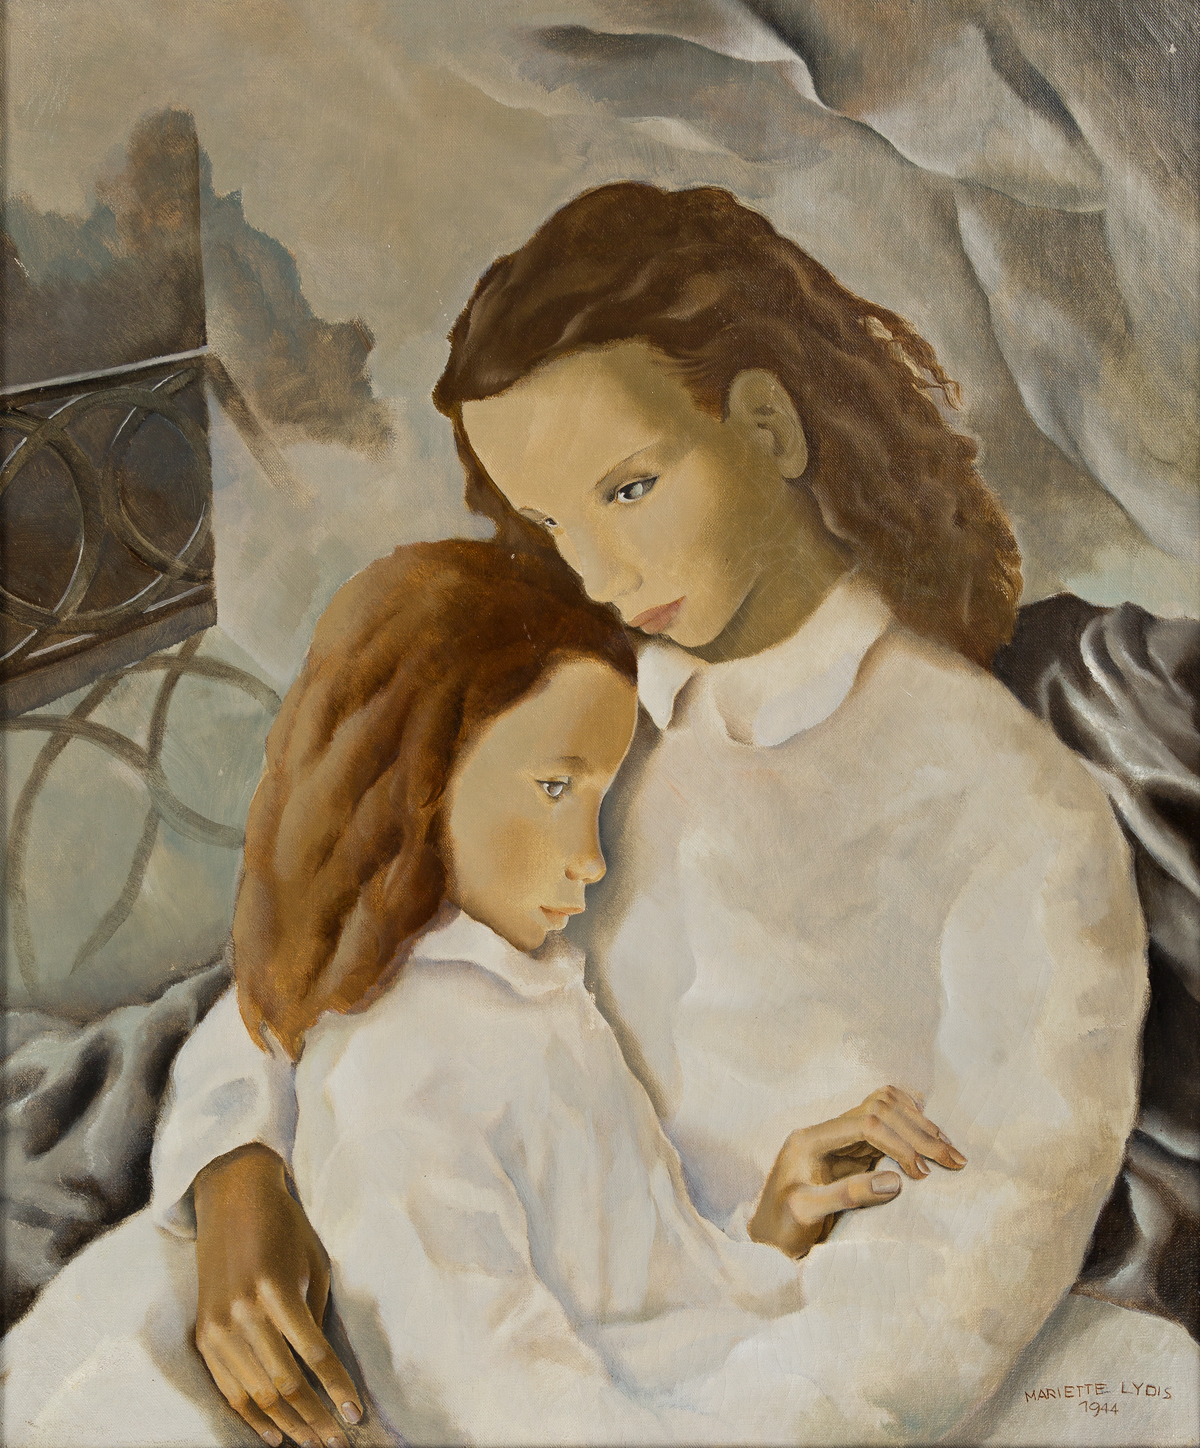 MARIETTE-LYDIS-(1887-1970)-Mother-and-Child